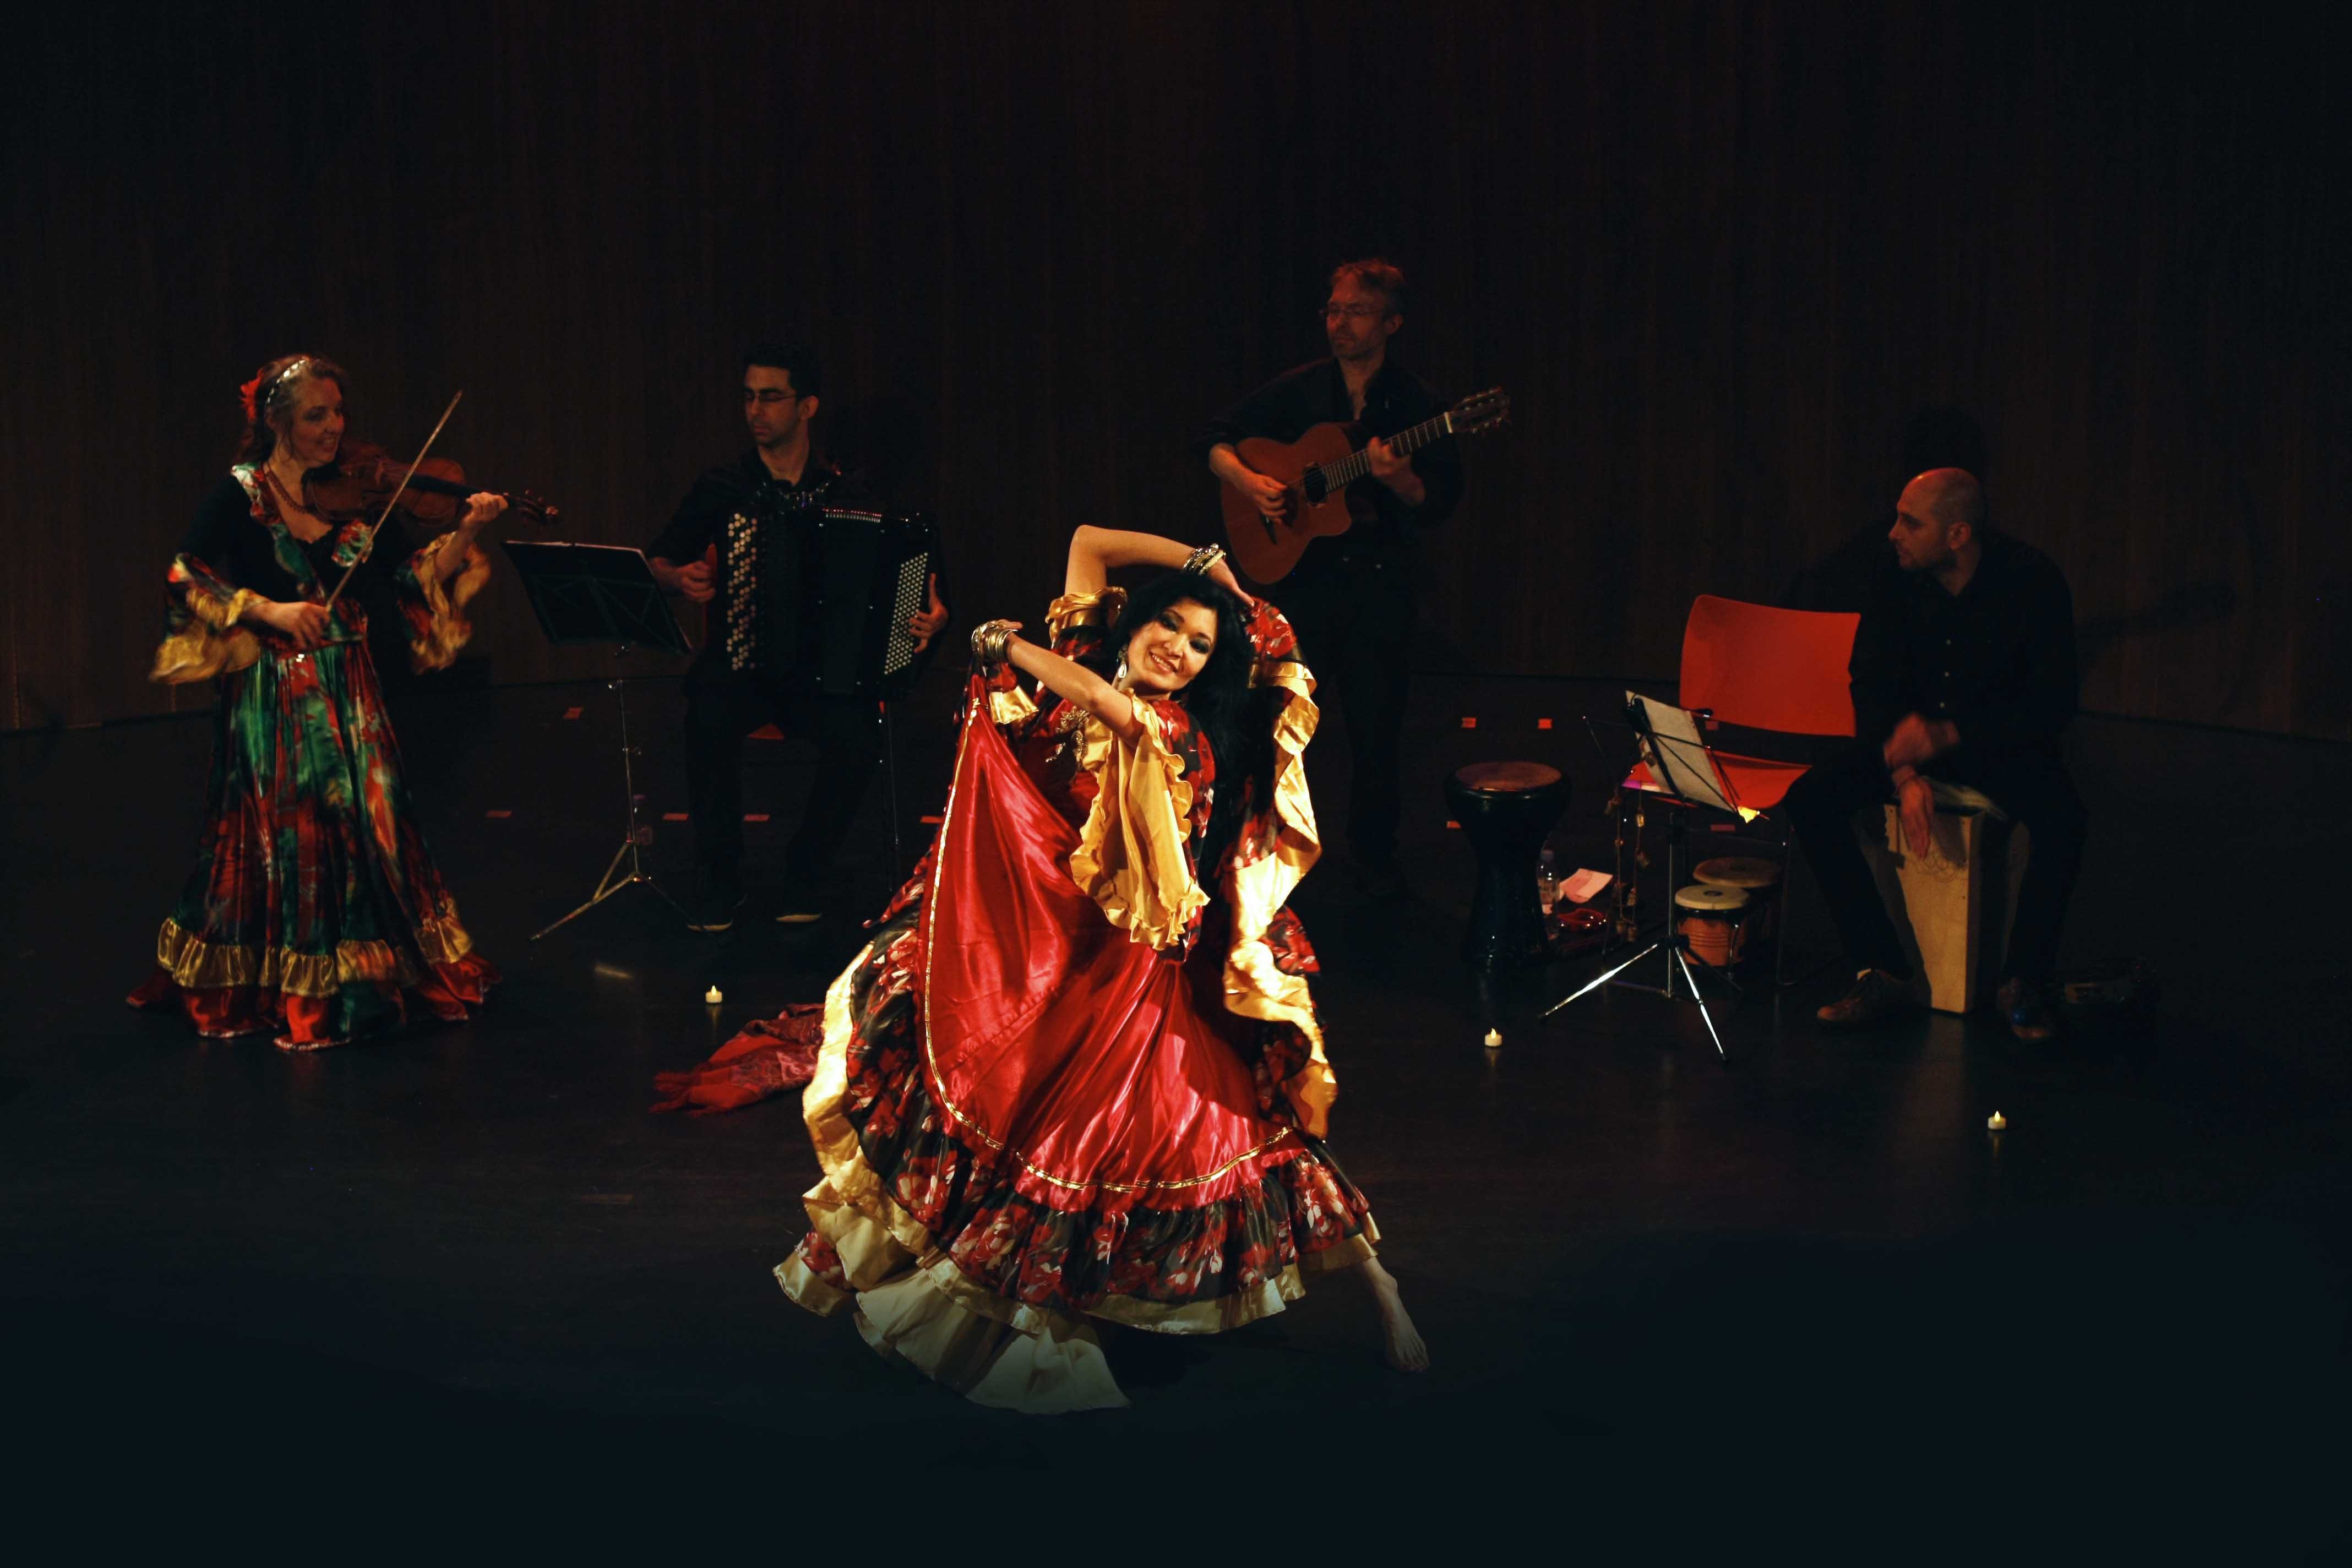 Gypsy Dance Wallpapers High Quality